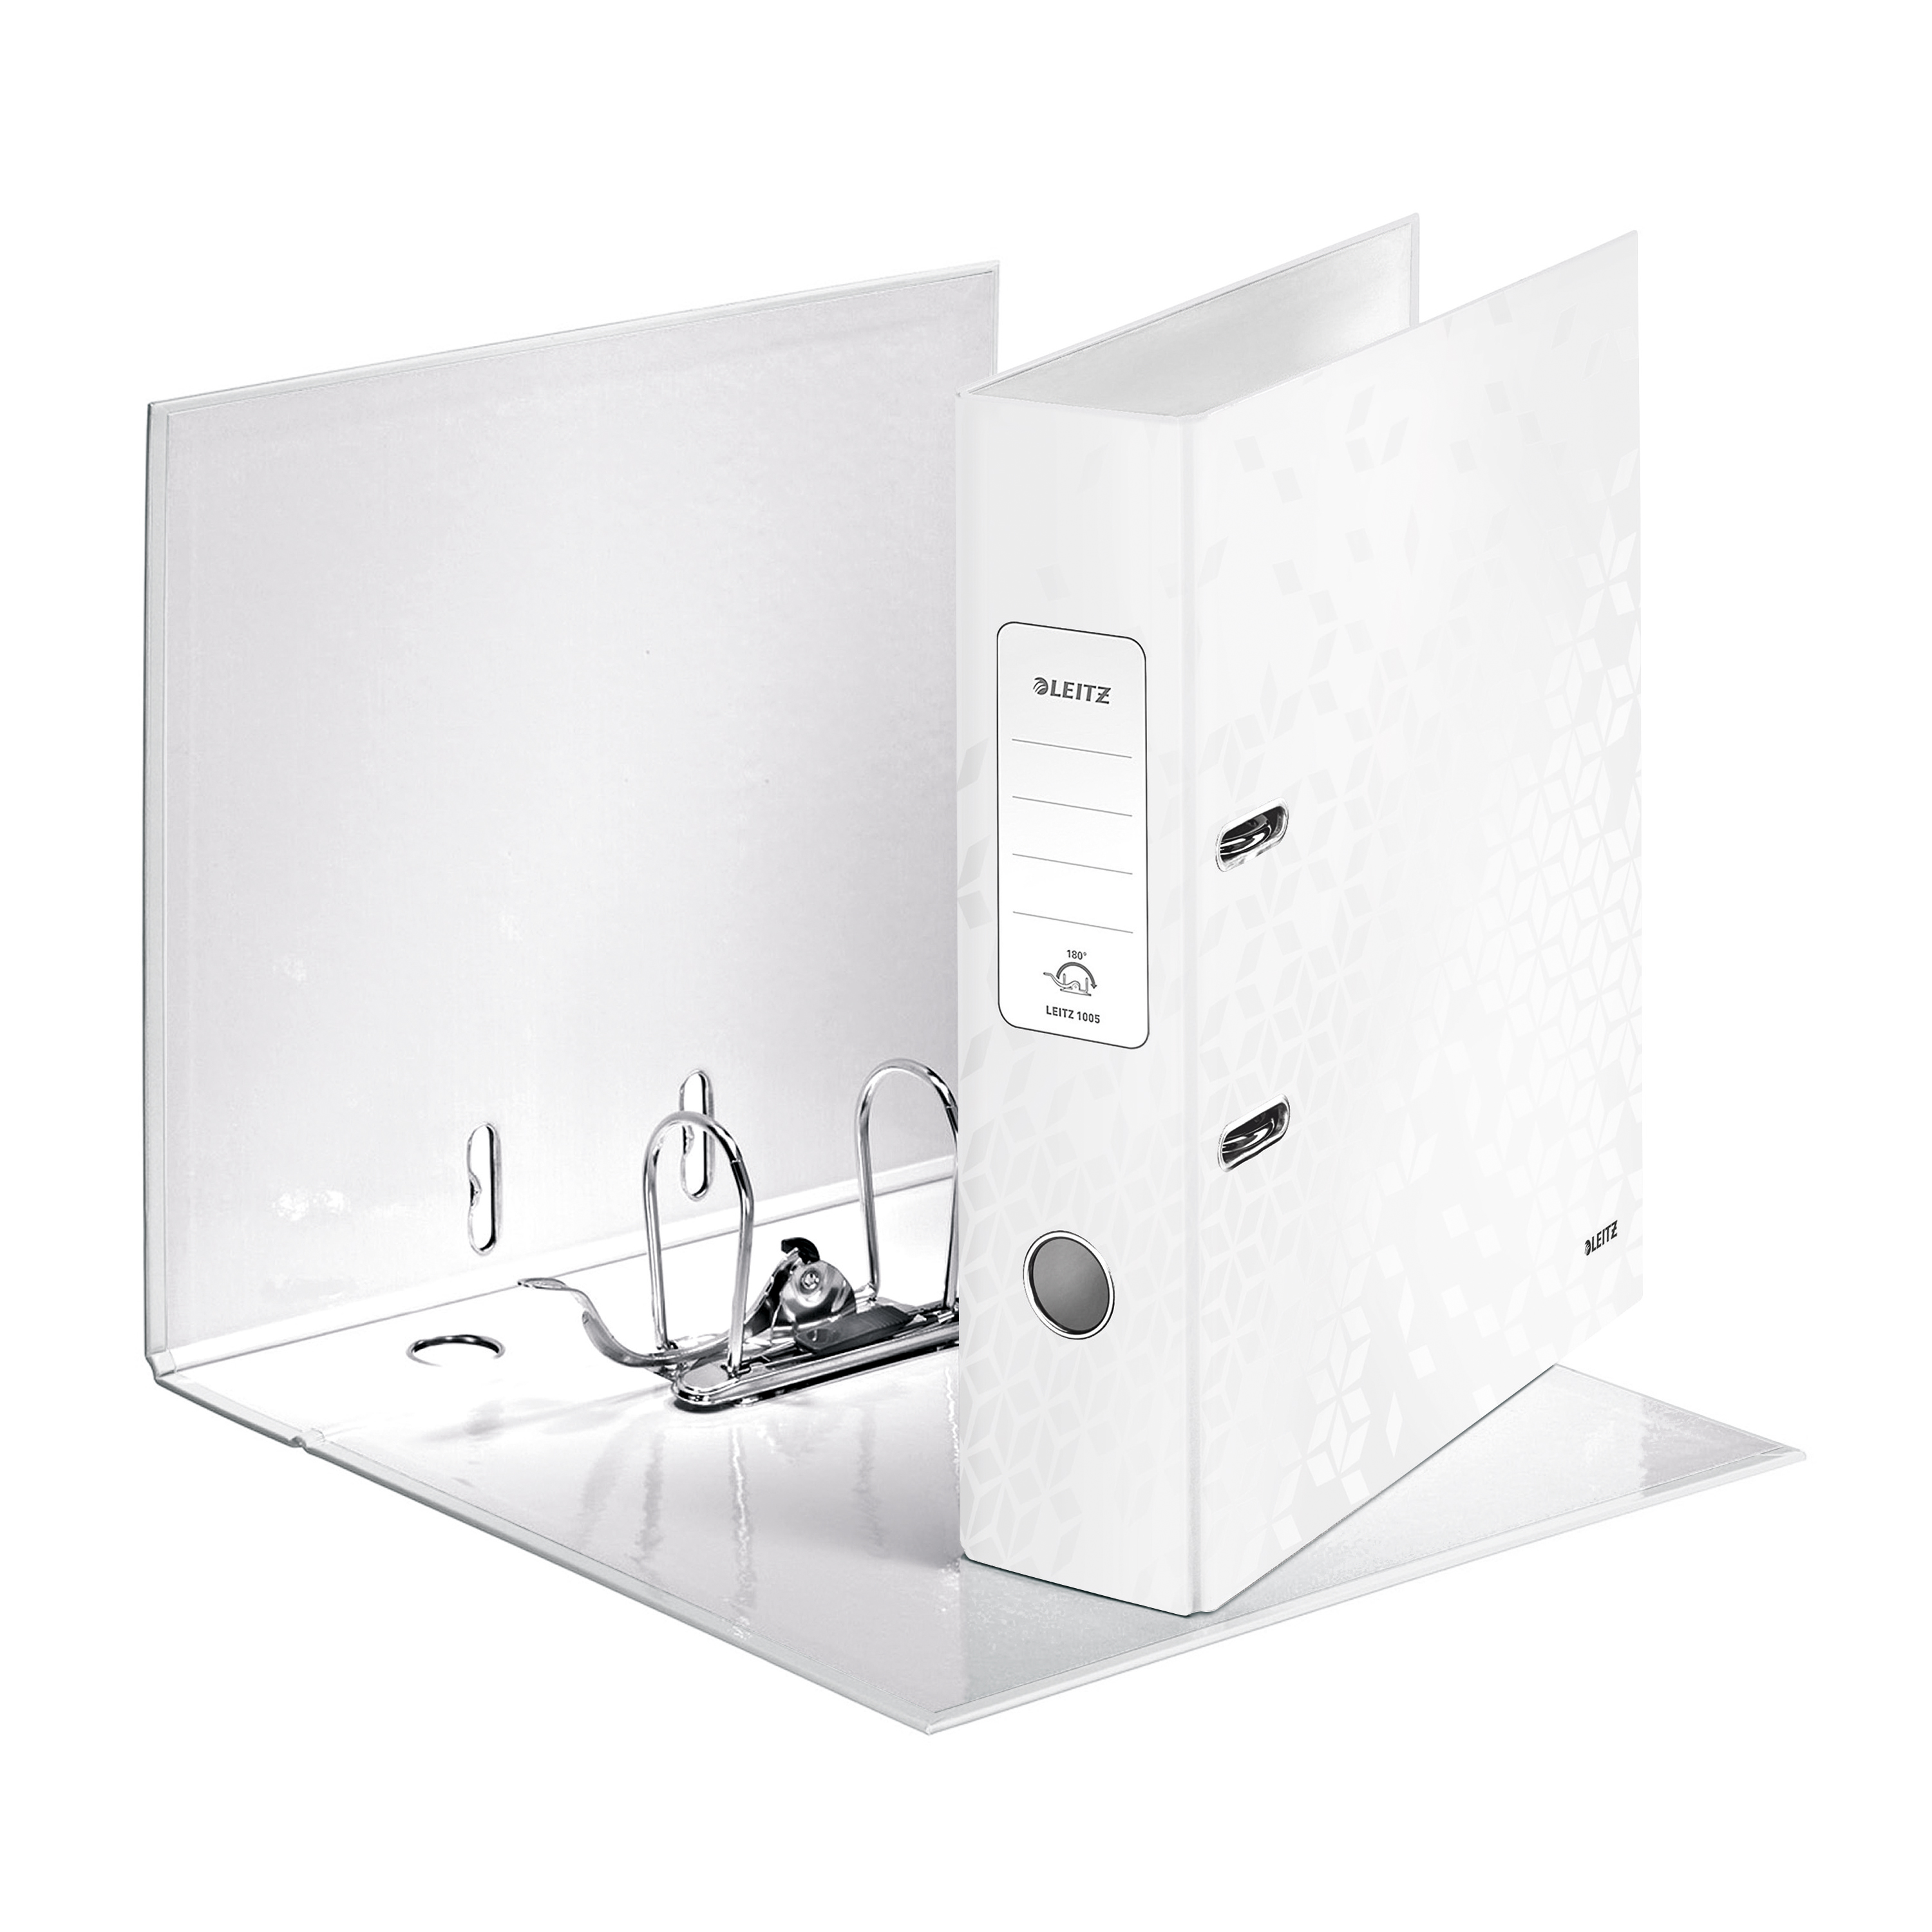 Leitz WOW Lever Arch File 80mm Spine for 600 Sheets A4 White Ref10050001 Pack 10 REDEMPTION Oct-Dec19